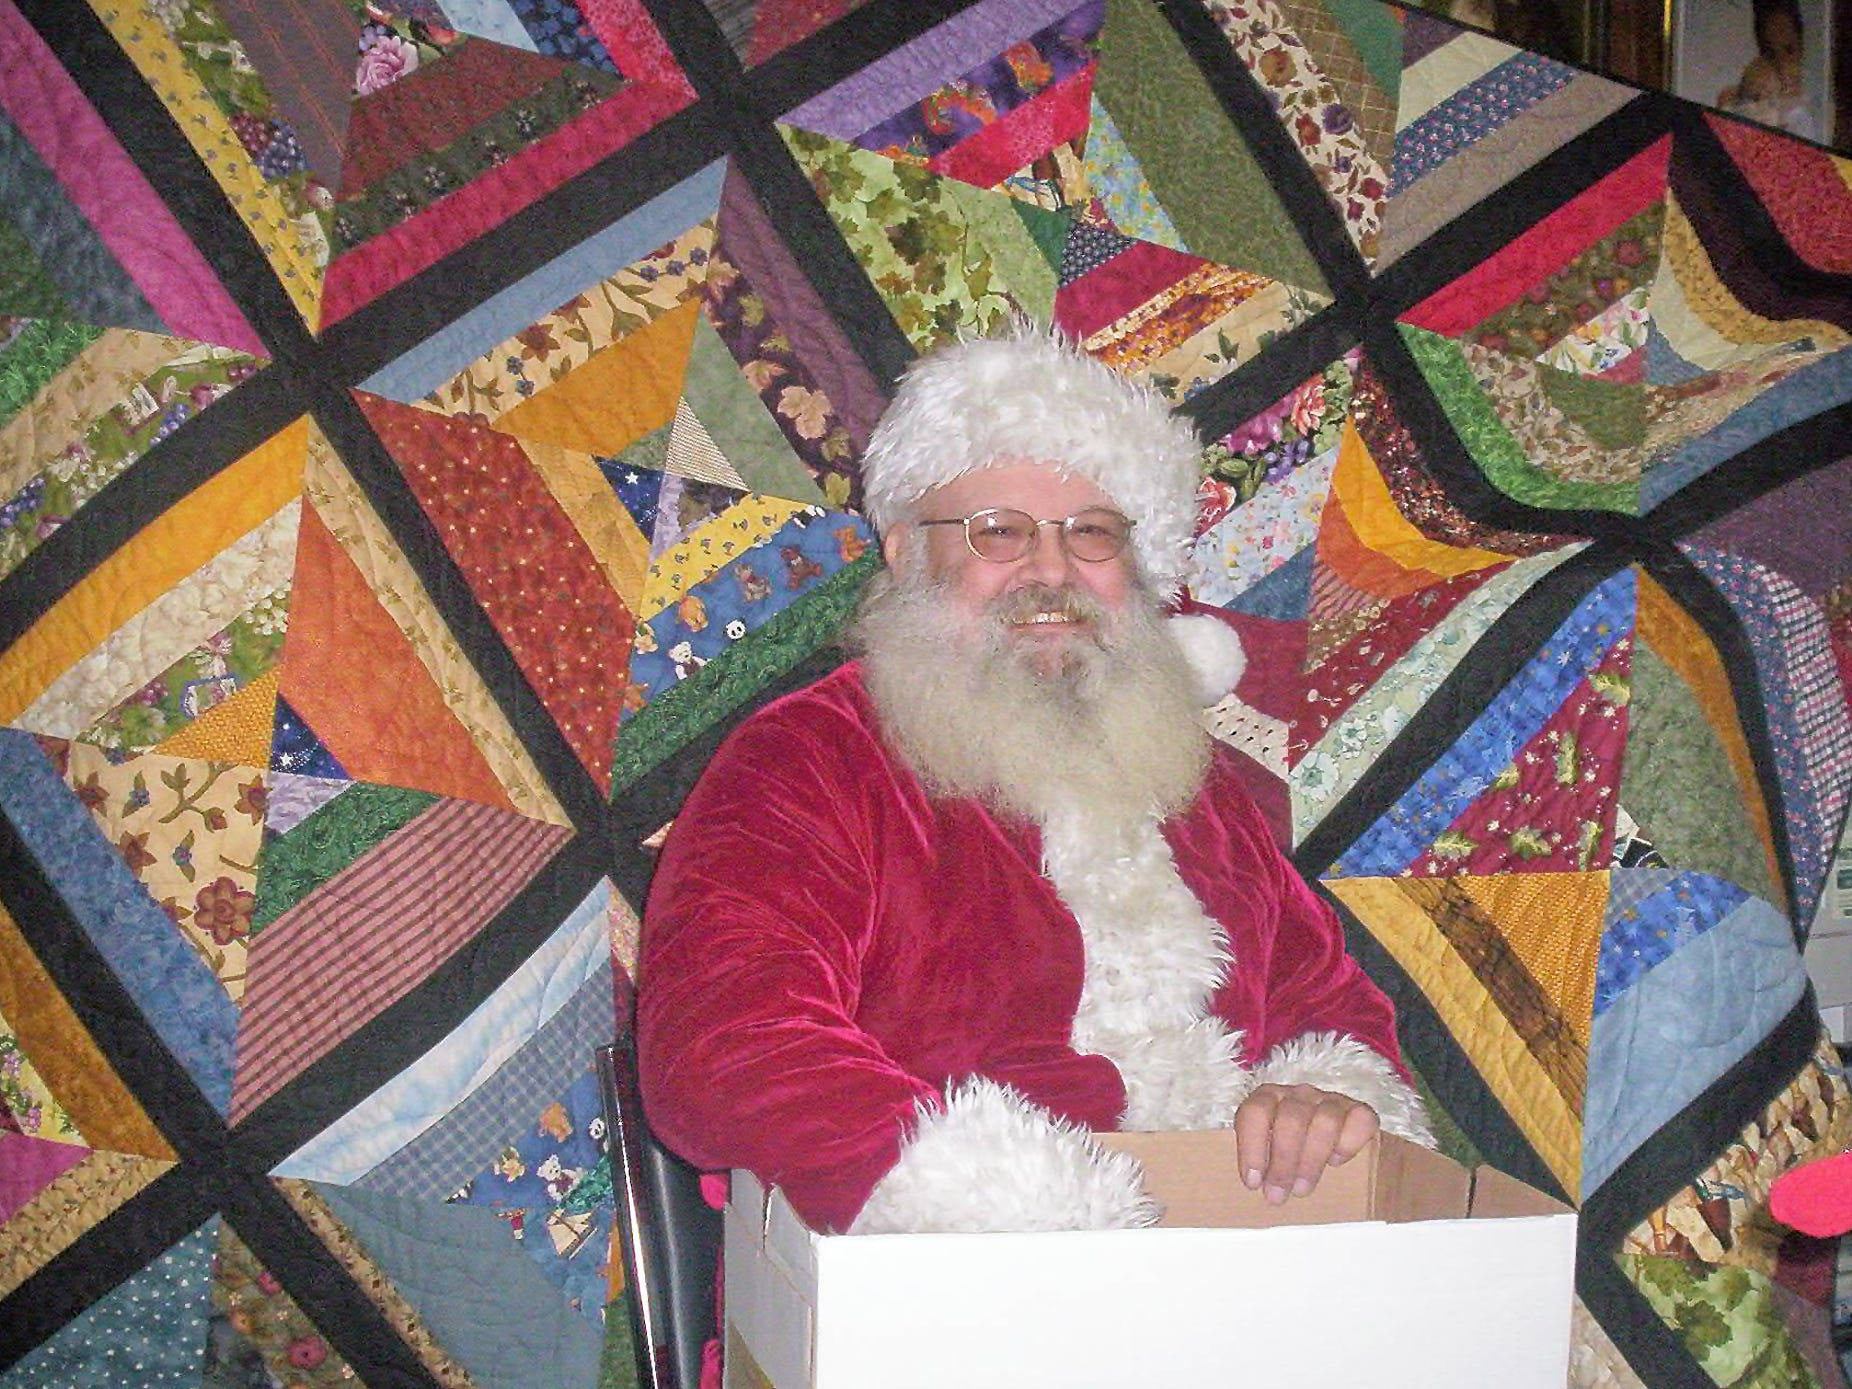 In 2006, SPCA leashes holiday spirit Santa Claus -- Steve Saltsman of Avoca -- poses with the quilt that was raffled by the Finger Lakes Society for the Prevention of Cruelty to Animals in Bath. Jeanne Fisher of Buffalo, a former Steuben County resident, won the quilt and the SPCA raised $1,200 for the shelter and its programs.